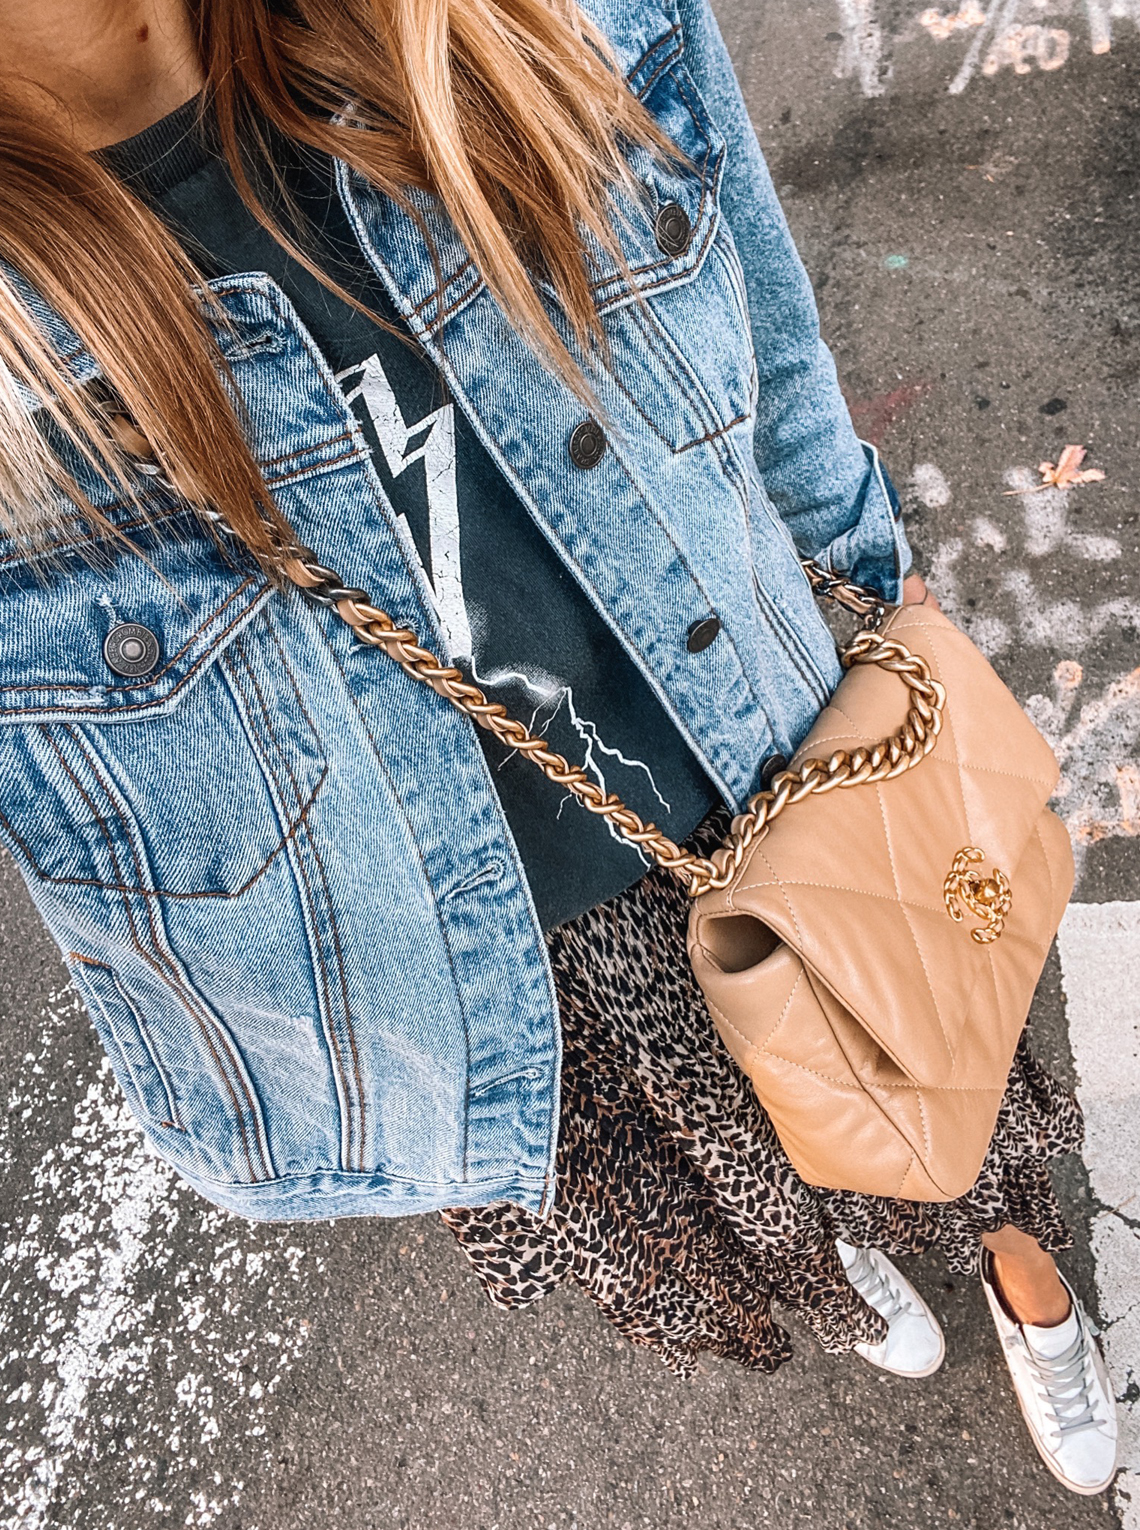 Fashion Jackson Wearing Denim Jacket Anine Bing Graphic Tshirt Leopard Midi Skirt Golden Goose Sneakers Chanel 19 Beige Handbag